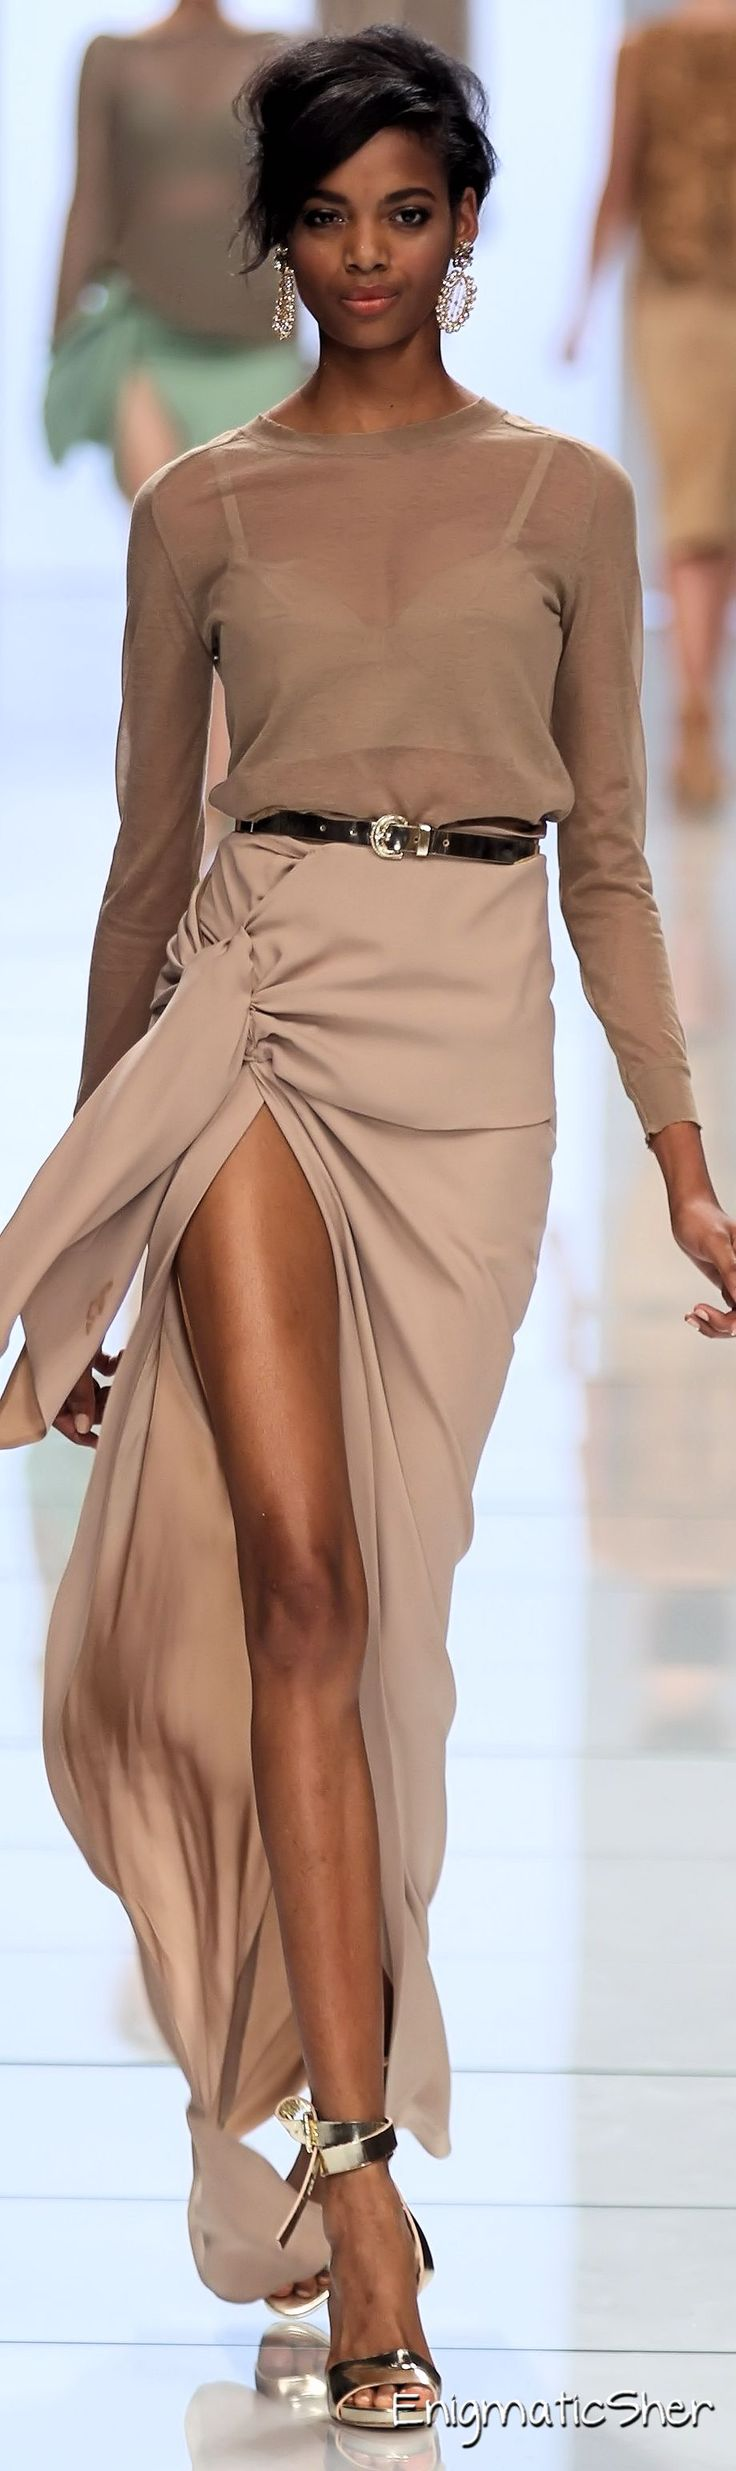 Ermanno Scervino Spring Summer 2012 Ready-To-Wear.........  REGISTER FOR THE RMR4 INTERNATIONAL.INFO PRODUCT LINE SHOWCASE WEBINAR BROADCAST at: www.rmr4international.info/500_tasty_diabetic_recipes.htm    .......      Don't miss our webinar!❤........